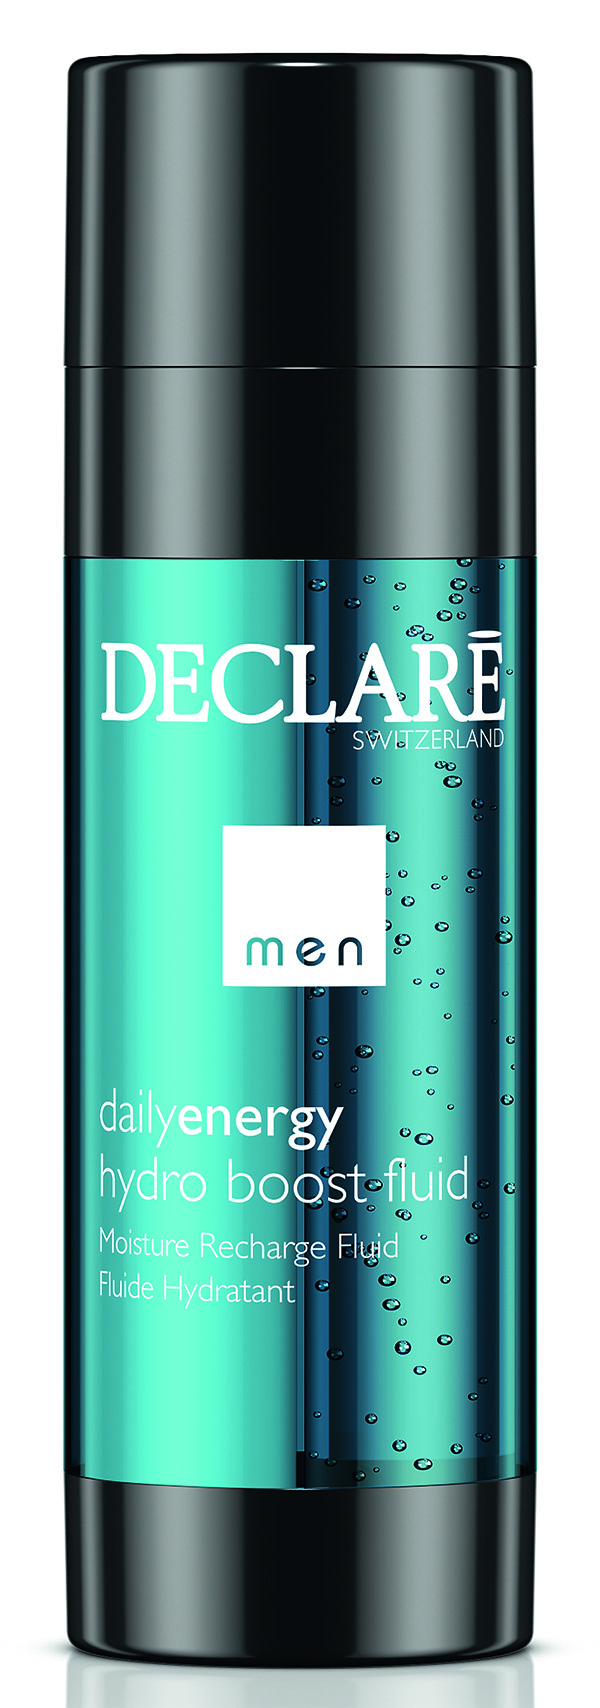 DECLARE Средство увлажняющее / Daily Energy Hydro Boost Fluid/ MEN CARE 2*20мл